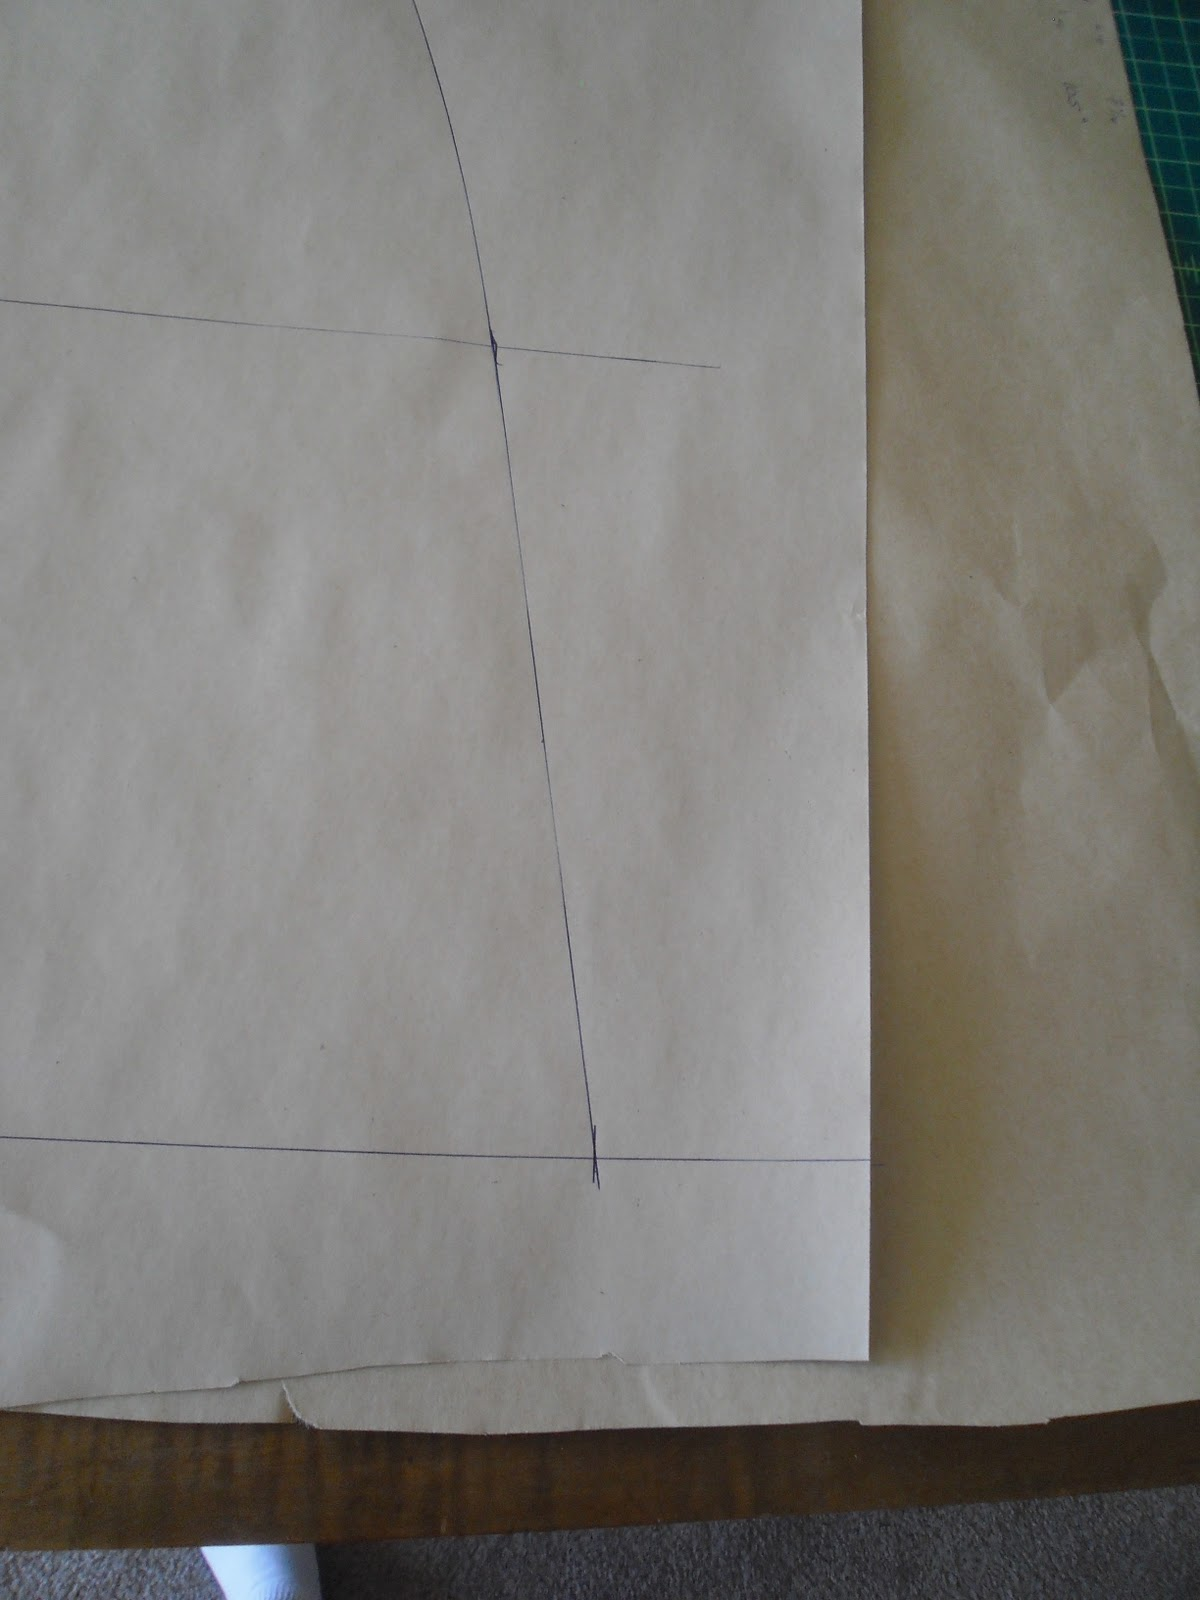 how to use a hem ruler